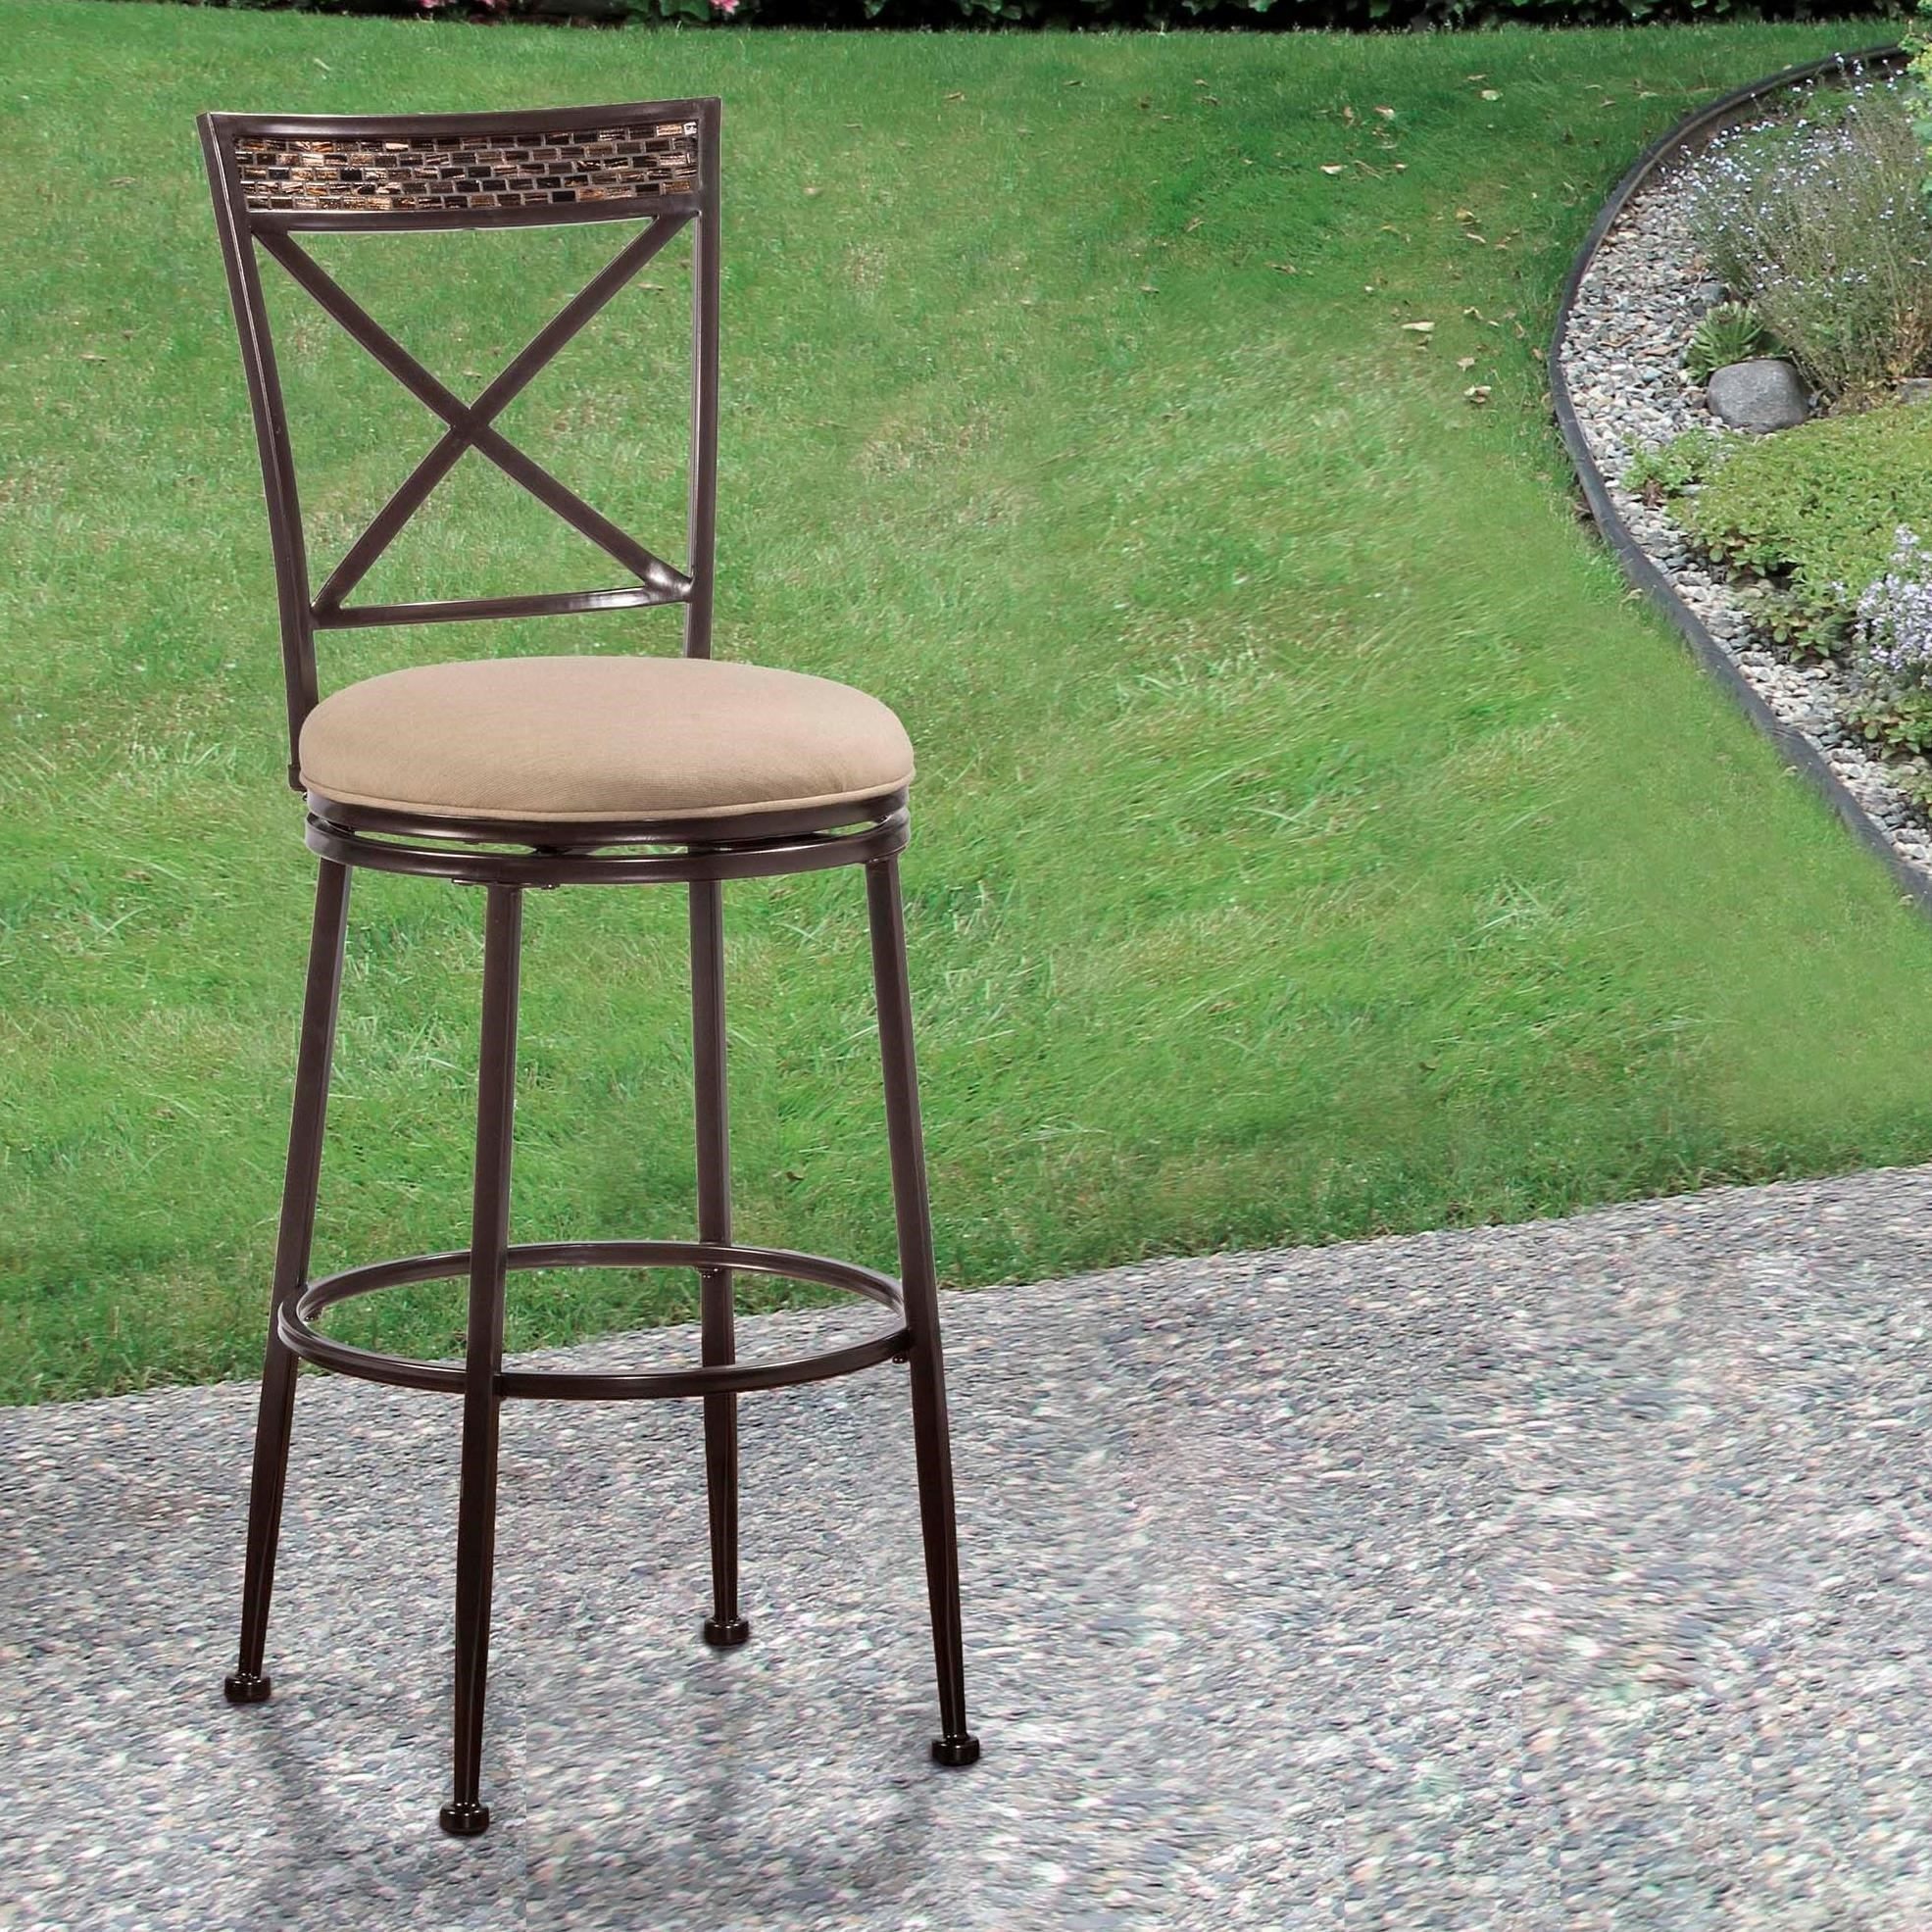 Hillsdale IndoorOutdoor Stools Swivel Bar Stool with X  : products2Fhillsdale2Fcolor2Findooroutdoor20stools 4421779156317 830 b1 from www.dunkandbright.com size 1971 x 1971 jpeg 1041kB